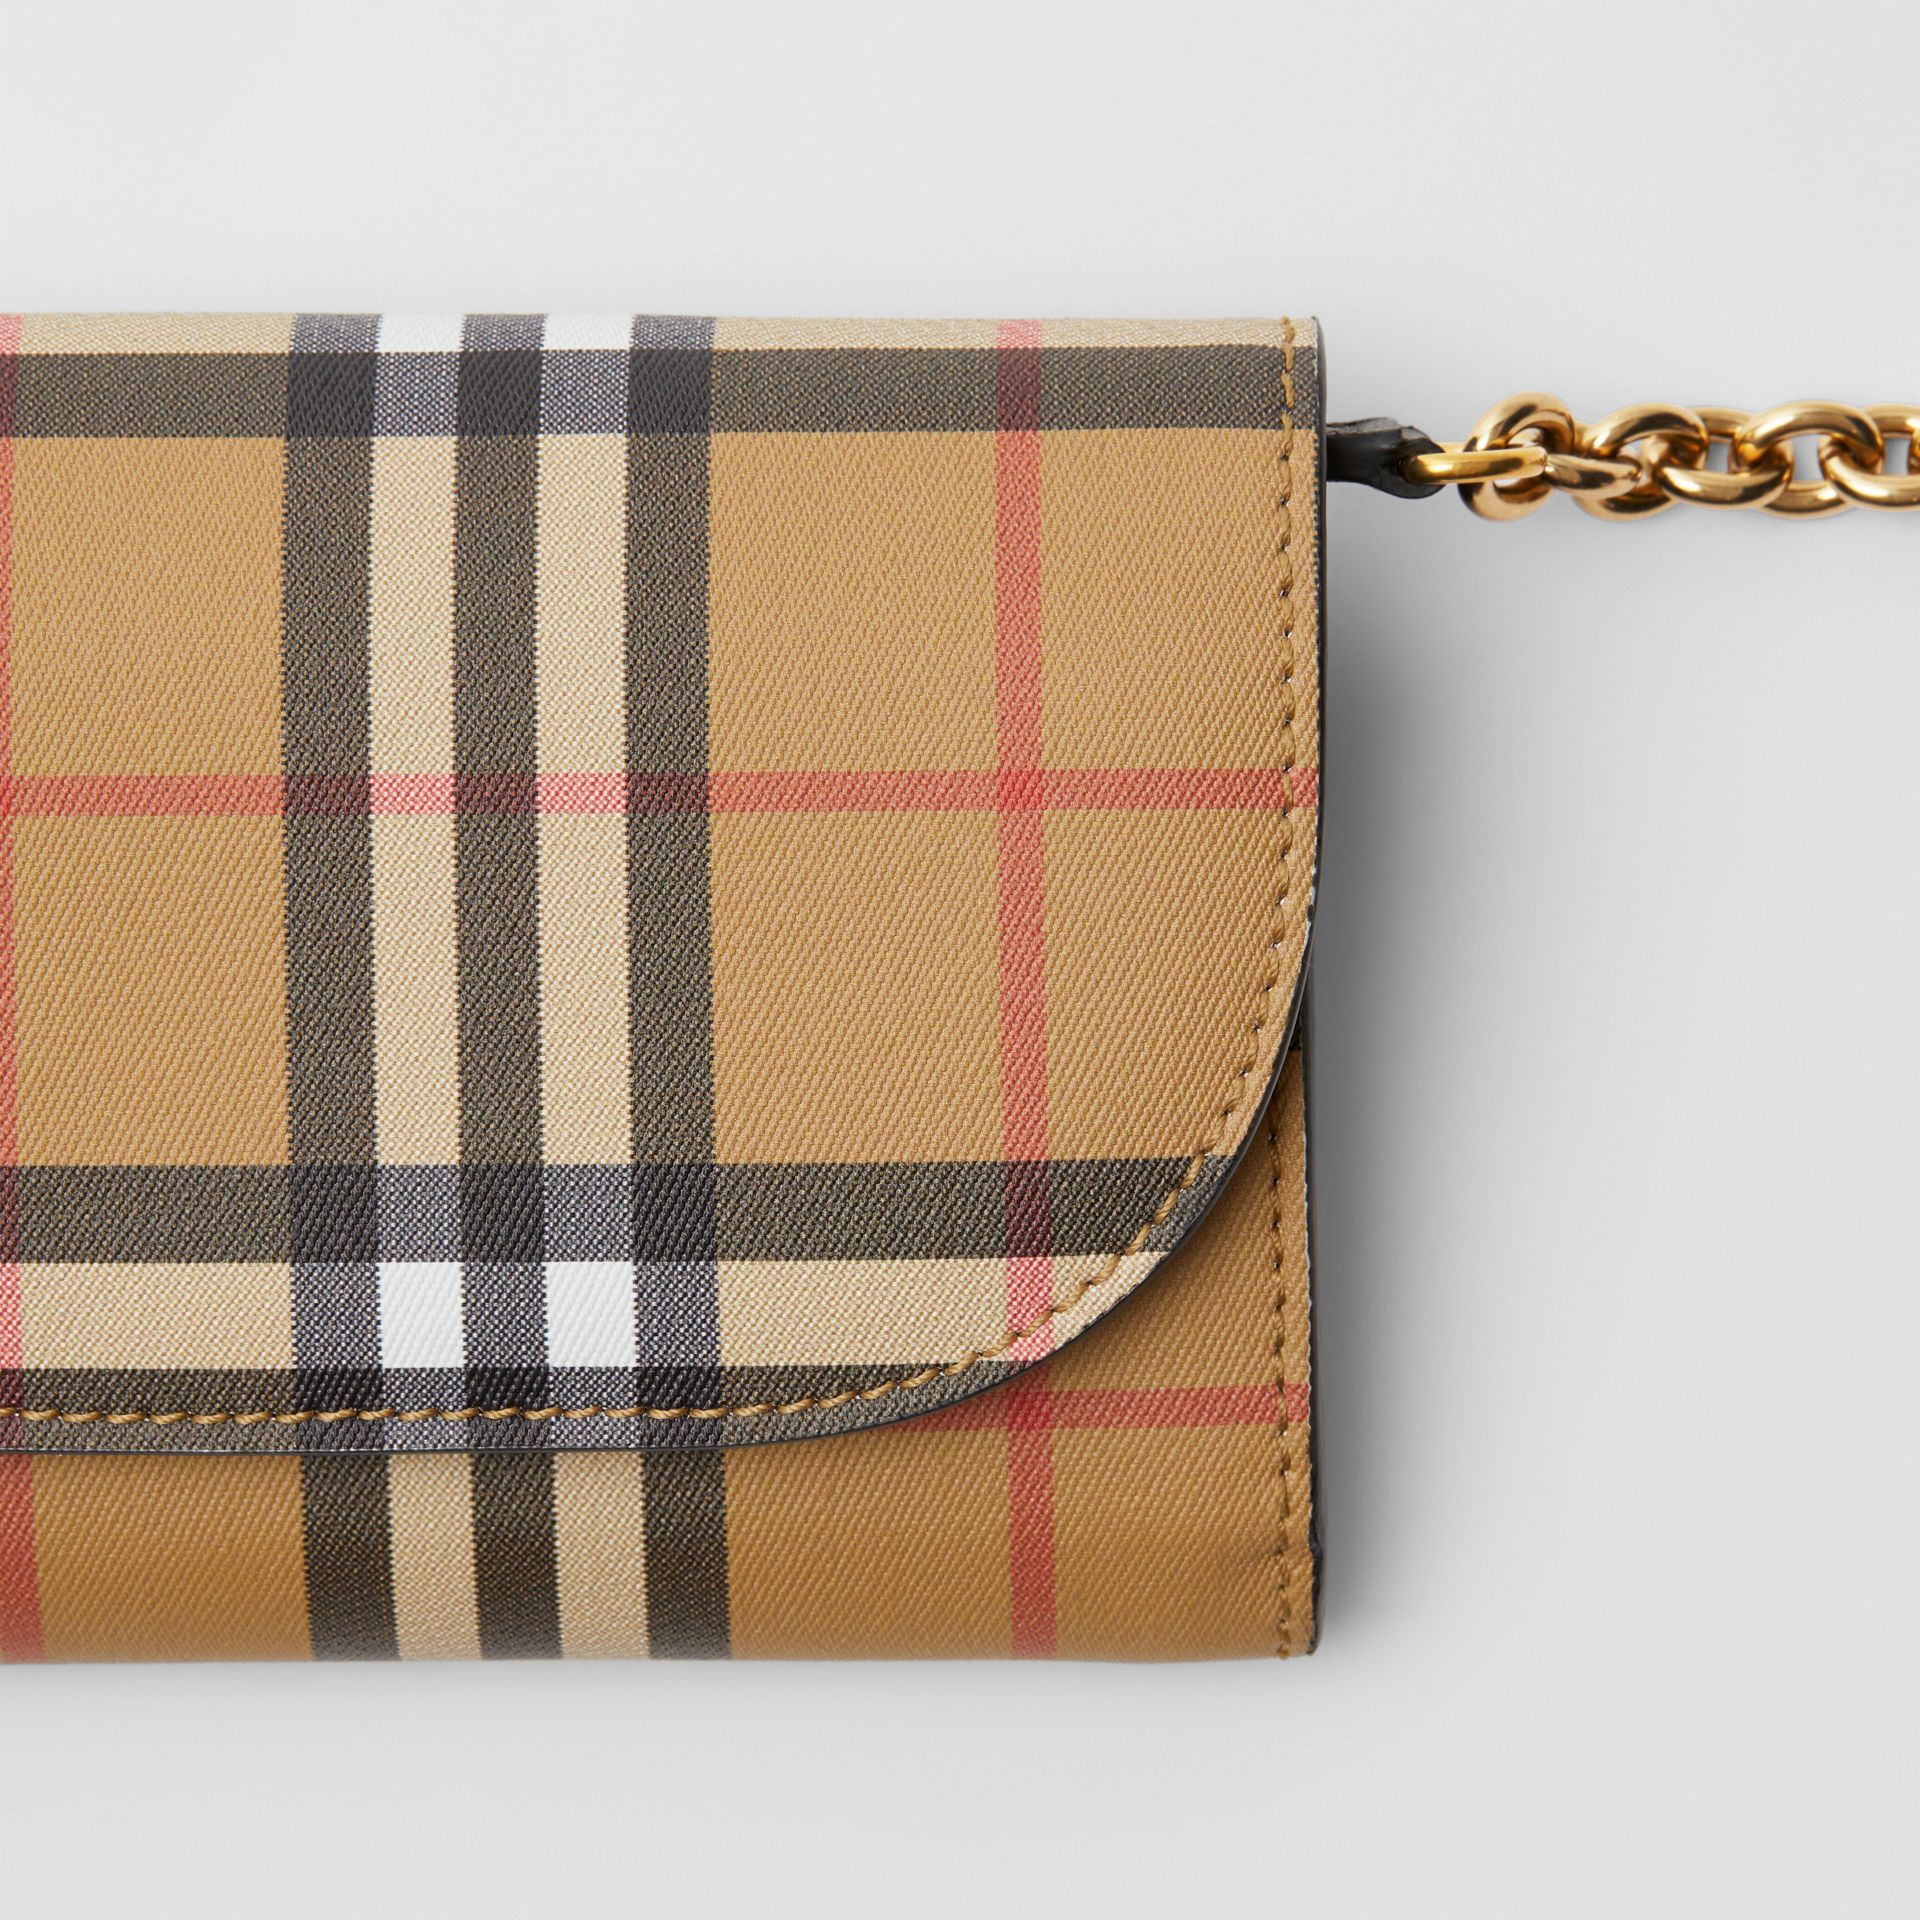 Vintage Check and Leather Wallet with Chain in Black - Women | Burberry Australia - gallery image 1